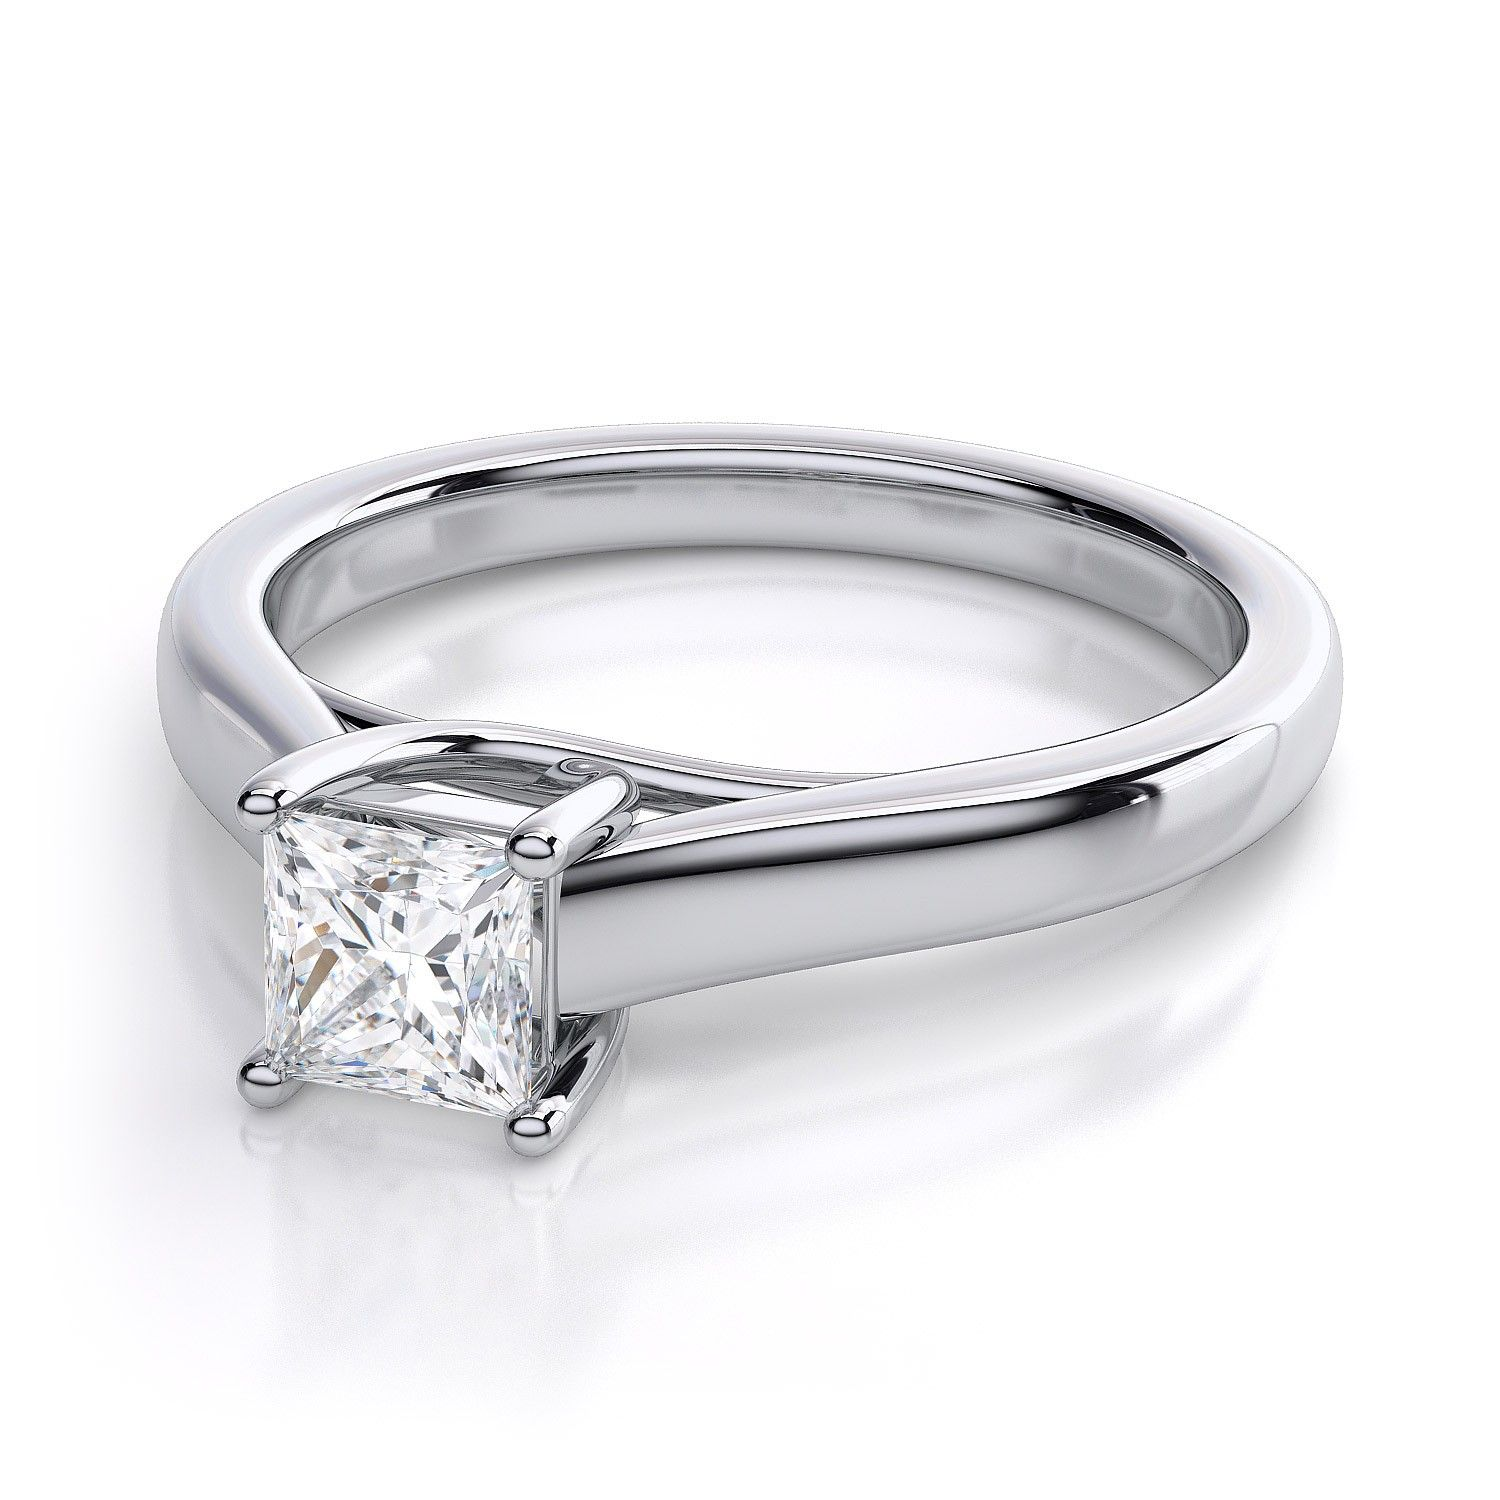 Resultado de imagen para princess diamond engagement rings